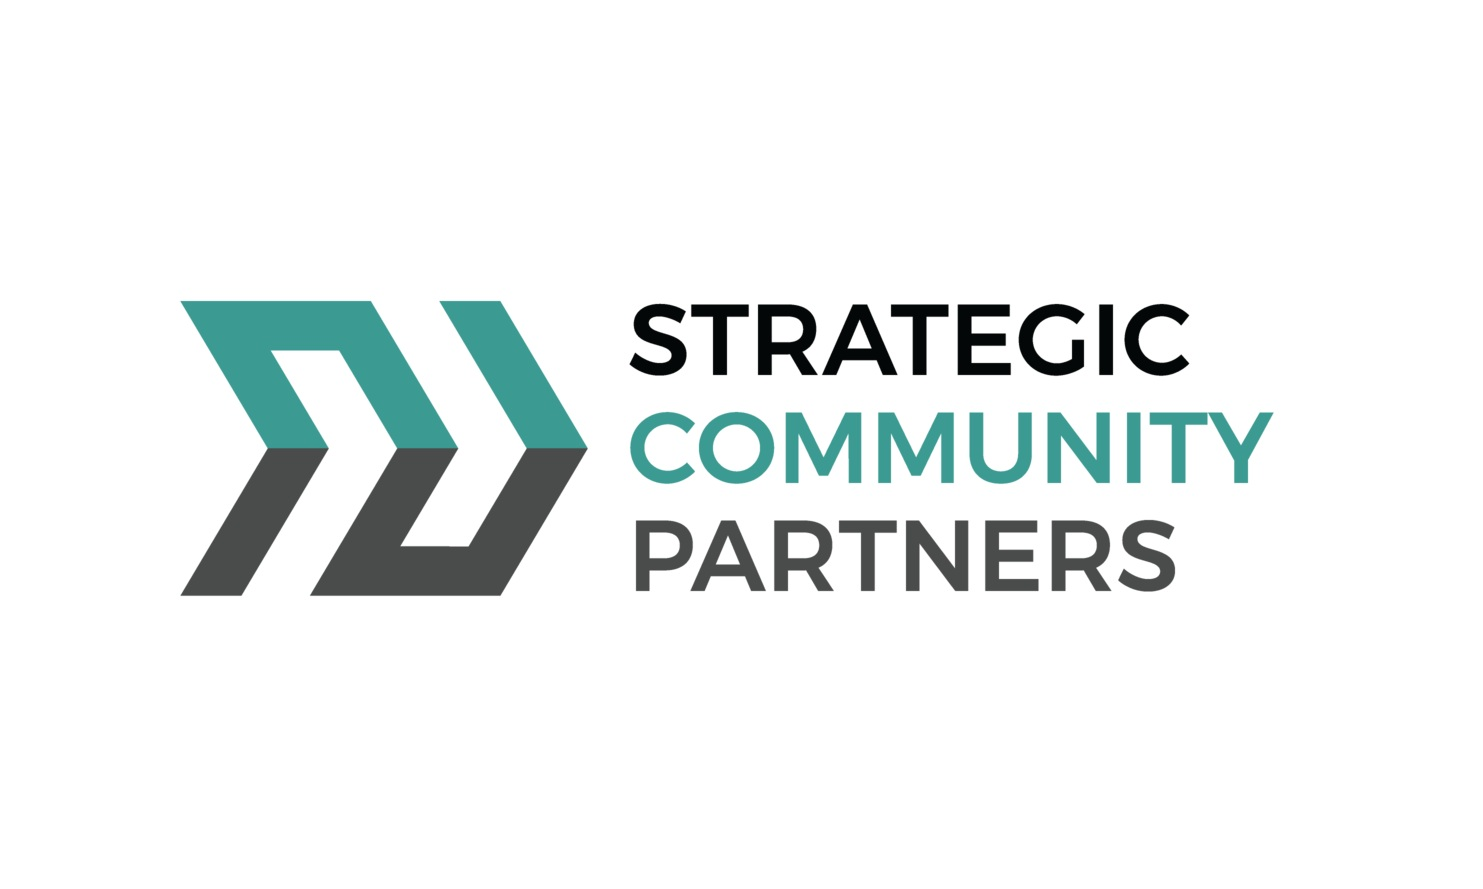 Thank you to our coffee sponsors and our co-organizing partners  Strategic Community Partners.